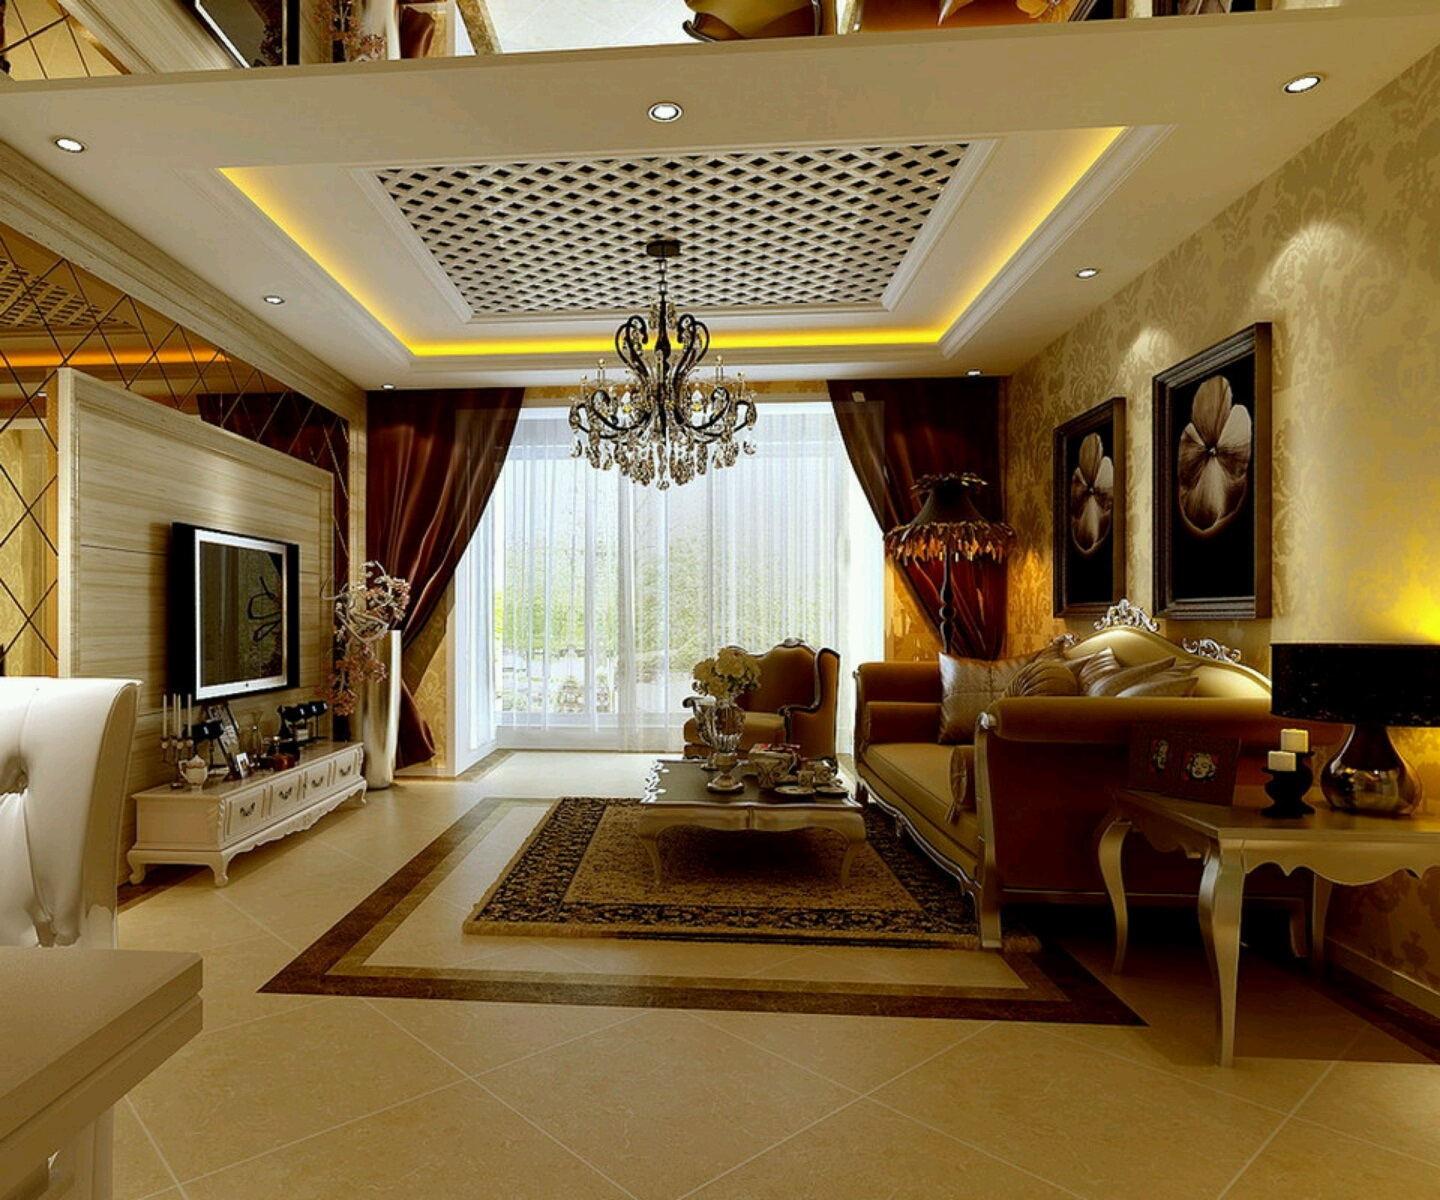 Ver fotos de casas bonitas escoja y vote por sus fotos de for Latest interior designs for home